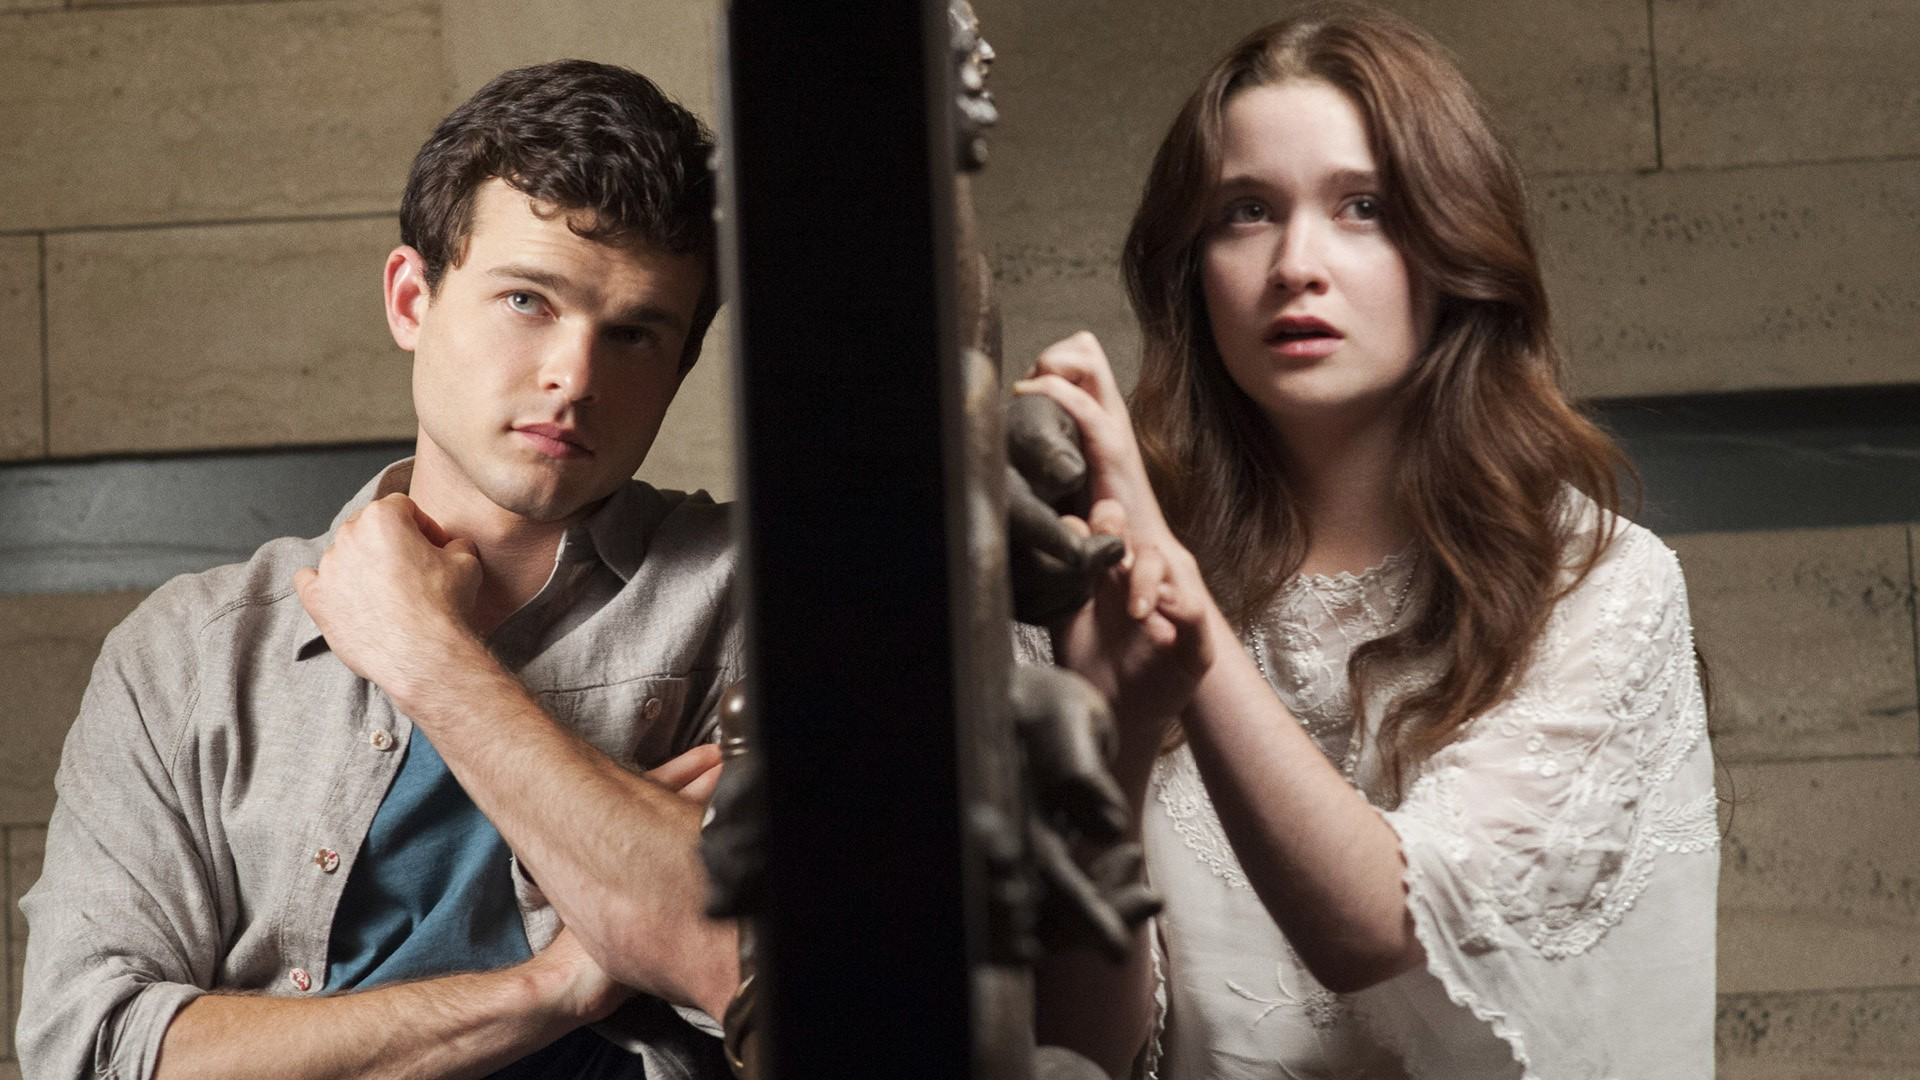 Ethan Wate (Alden Ehrenreich) and Lena Duchannes (Alice Englert) in Beautiful Creatures (2013)